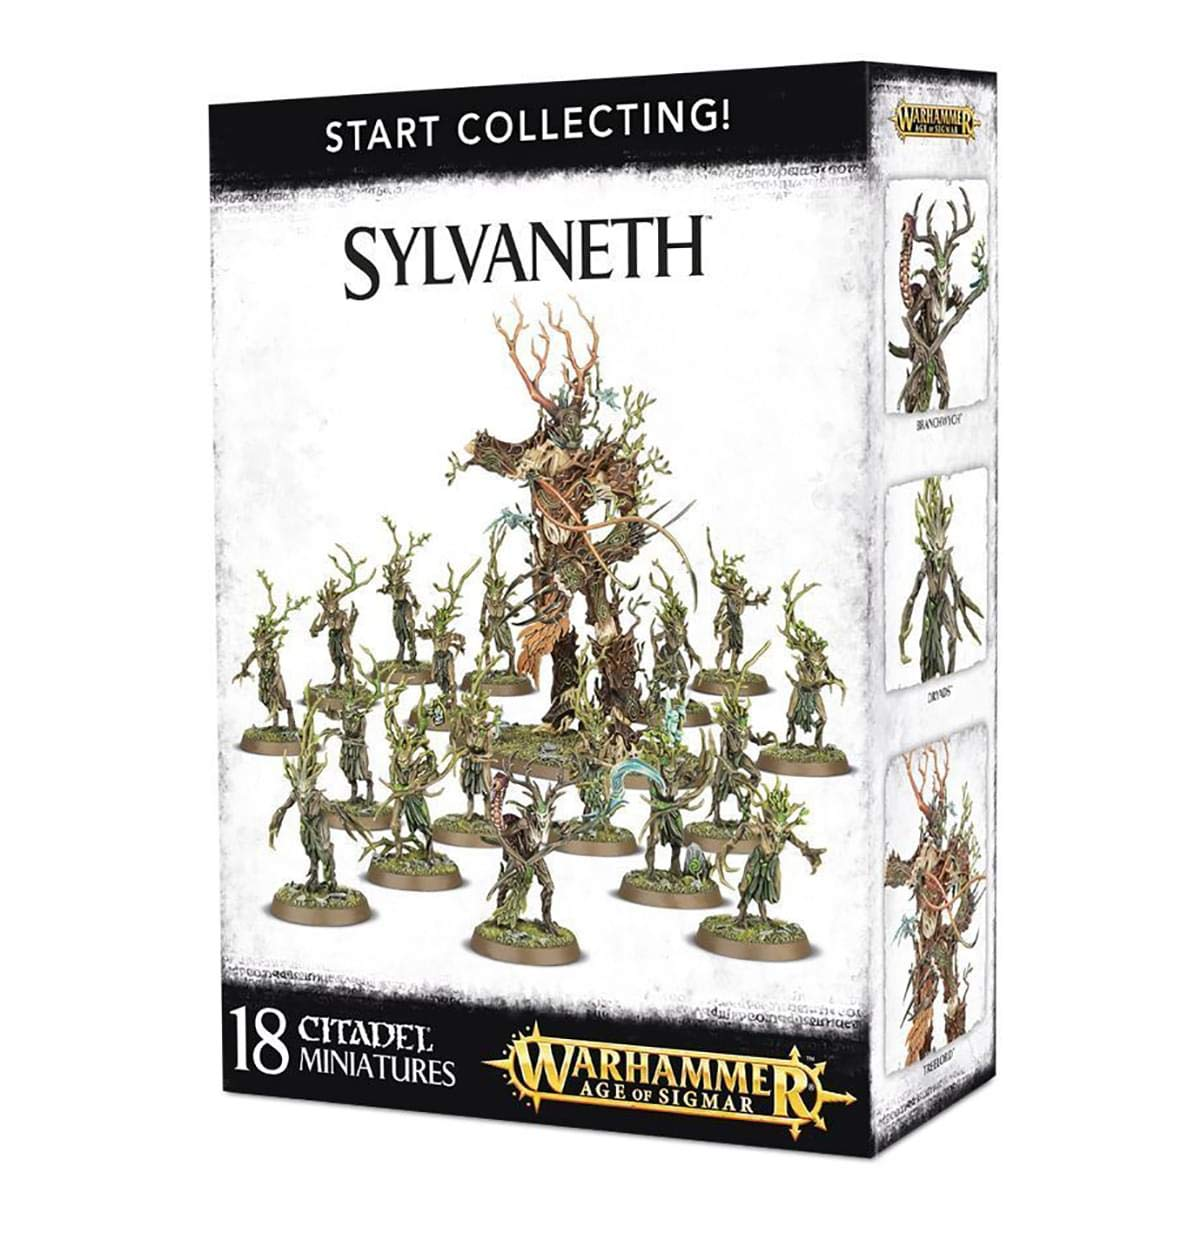 Games Workshop 99120204019 Age of Sigmar Start Collecting Sylvaneth by Games Workshop (Image #1)